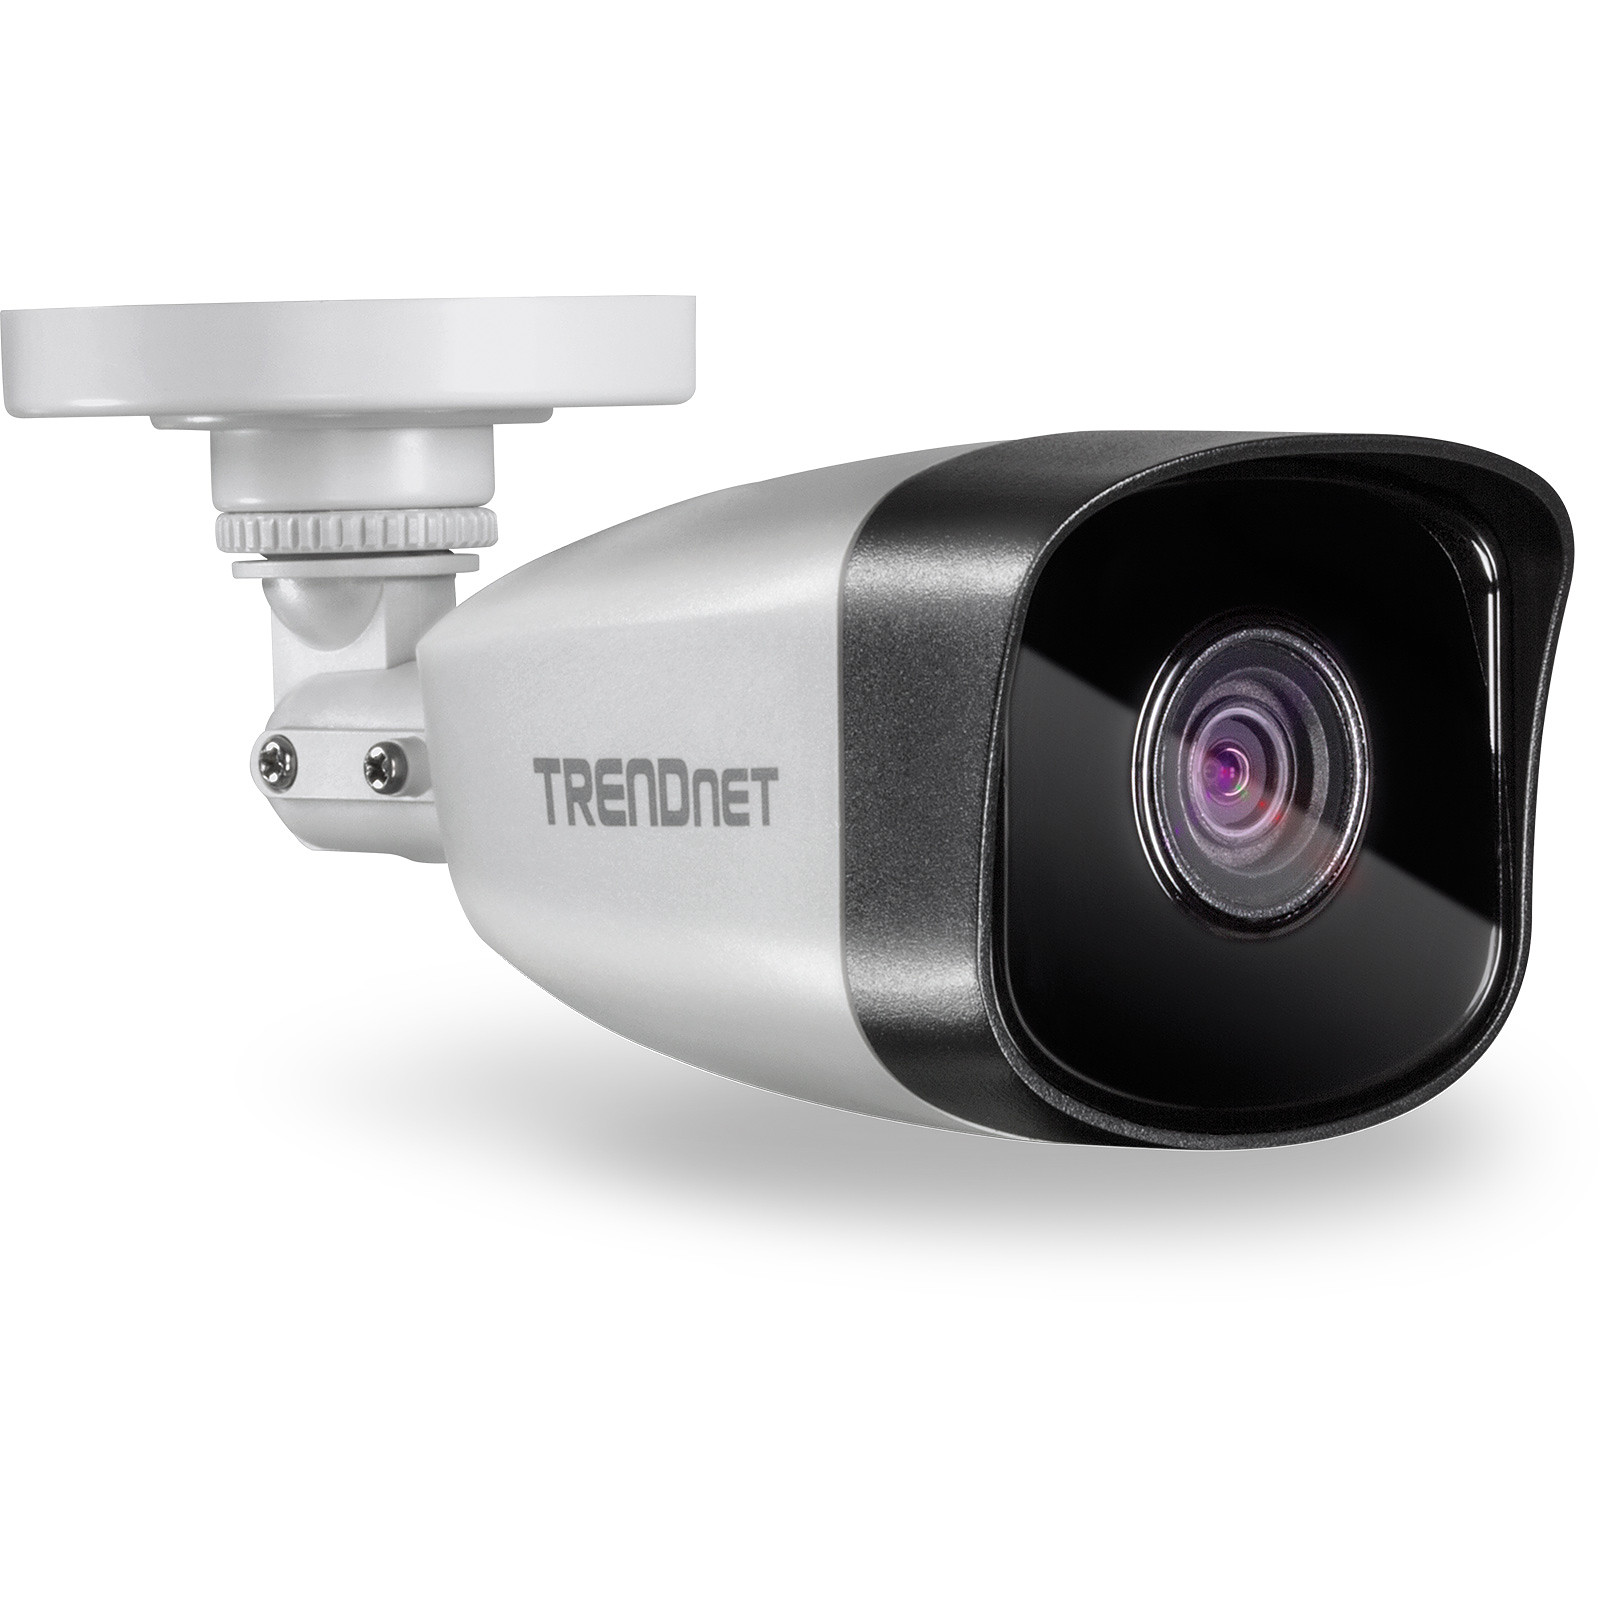 TRENDnet TV-IP324PI